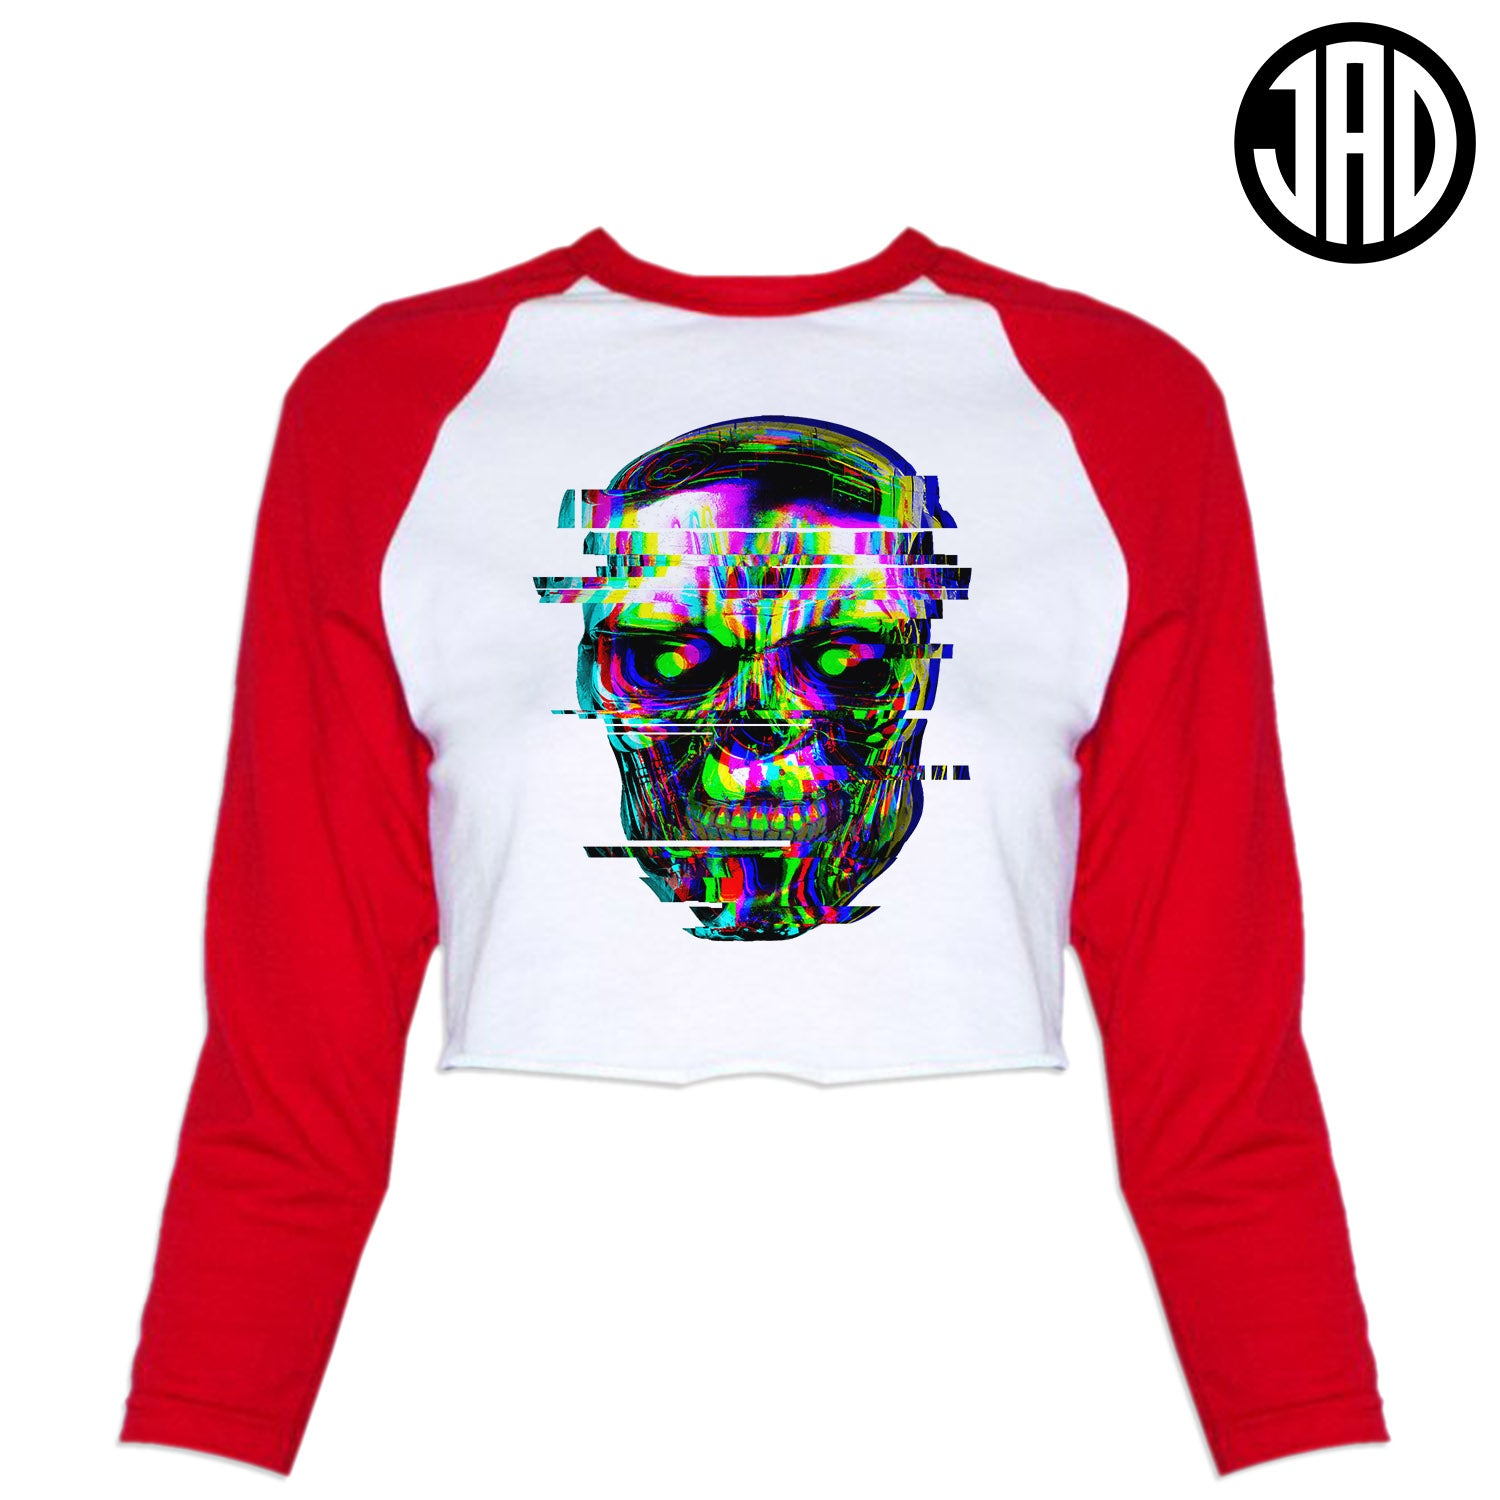 Exterminate - Women's Cropped Baseball Tee